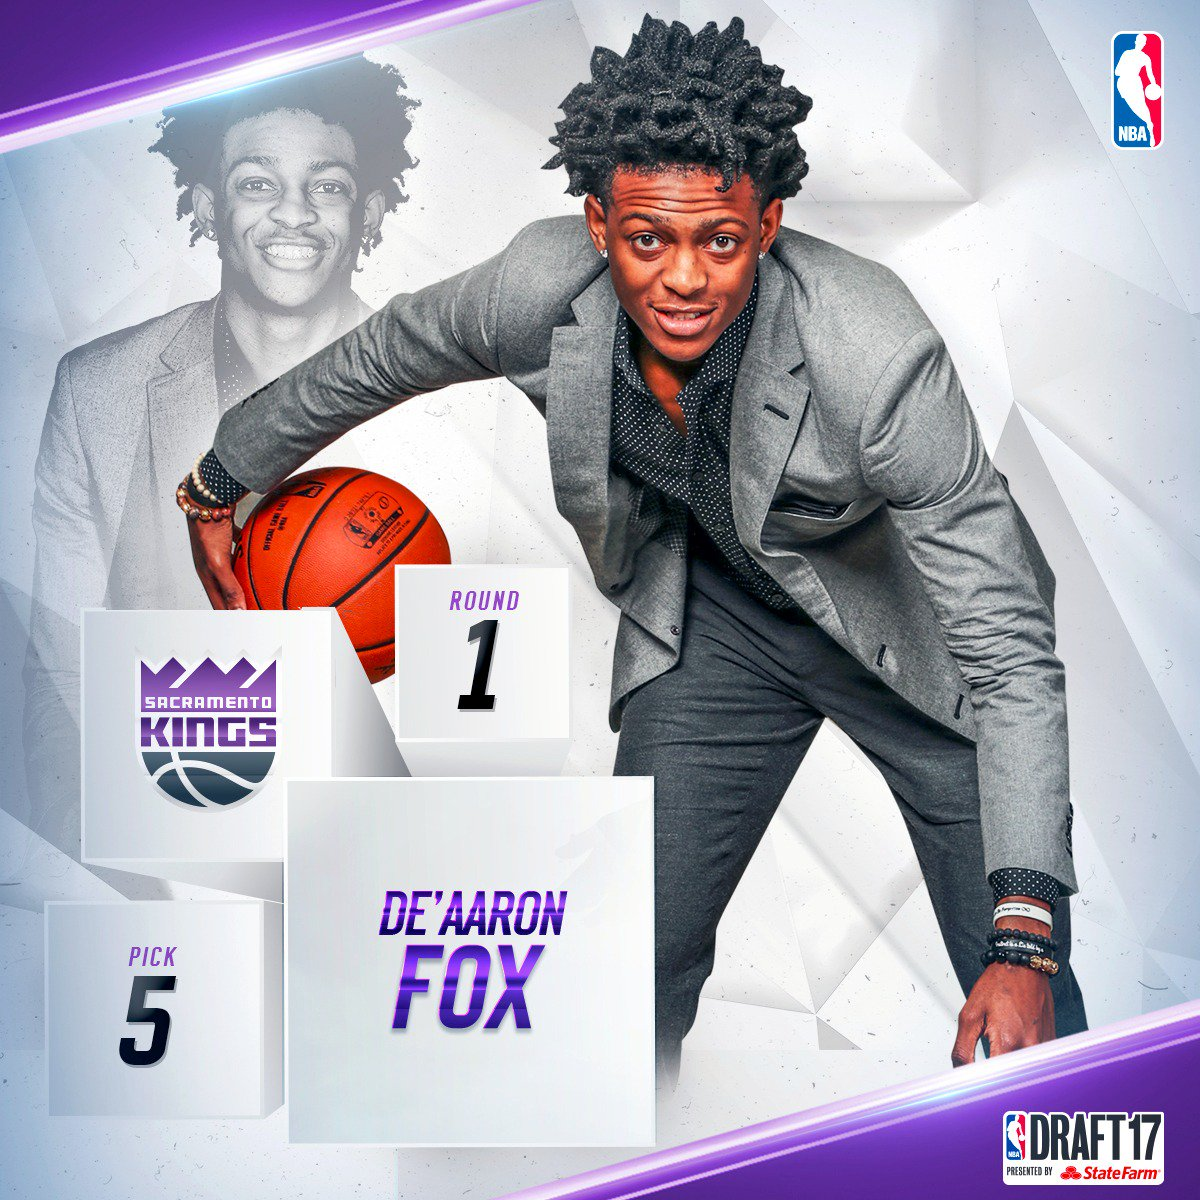 With the fifth pick in the 2017 #NBADraft, the @SacramentoKings select...